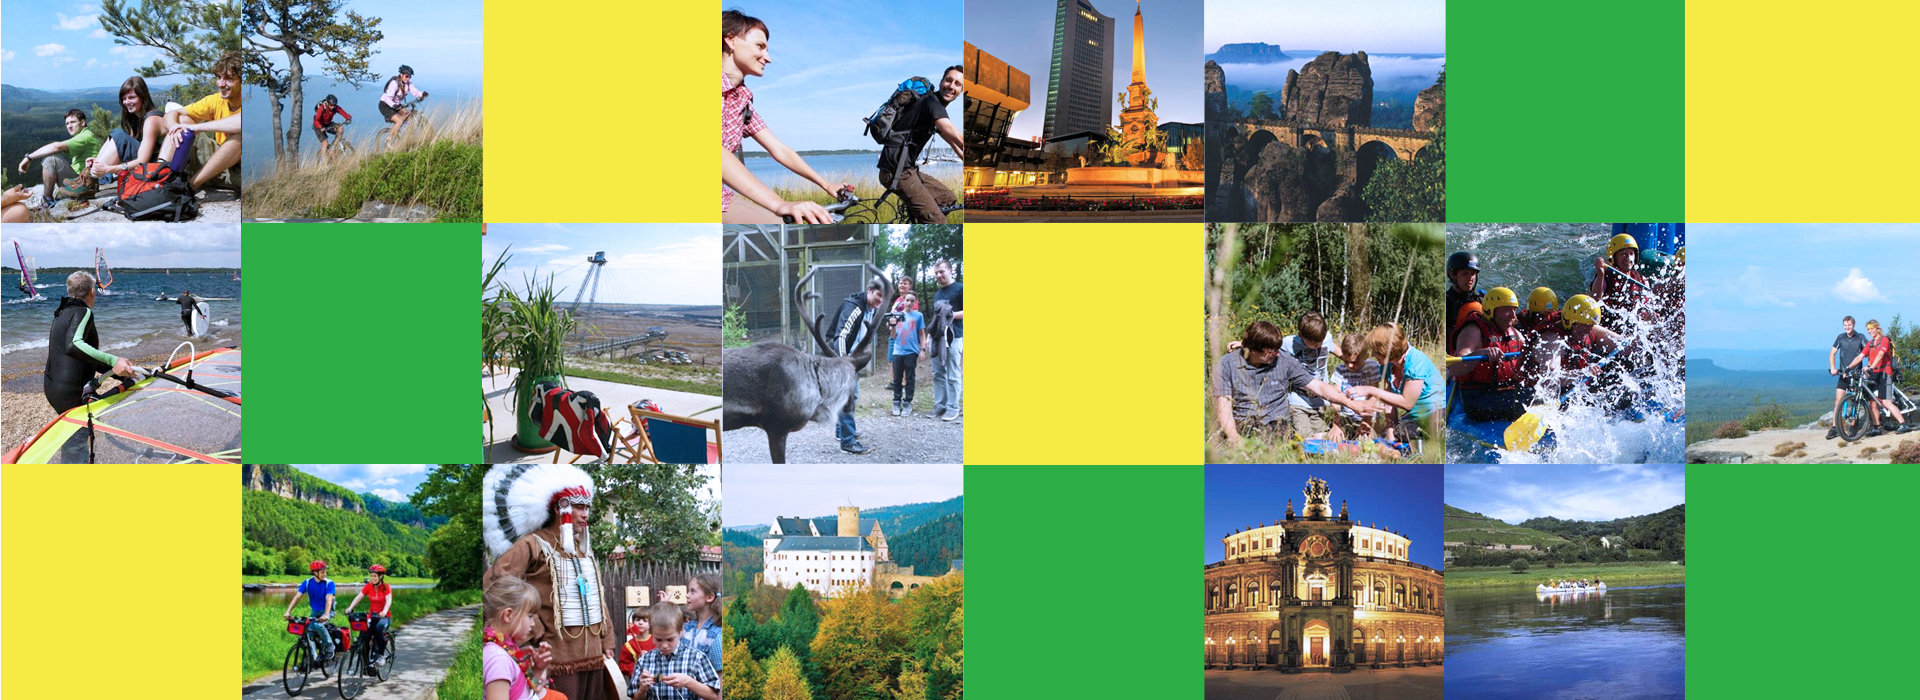 Saxony - spring campaign 2017. We have delivered 74.8% conversion rate from a single landing page!<br>